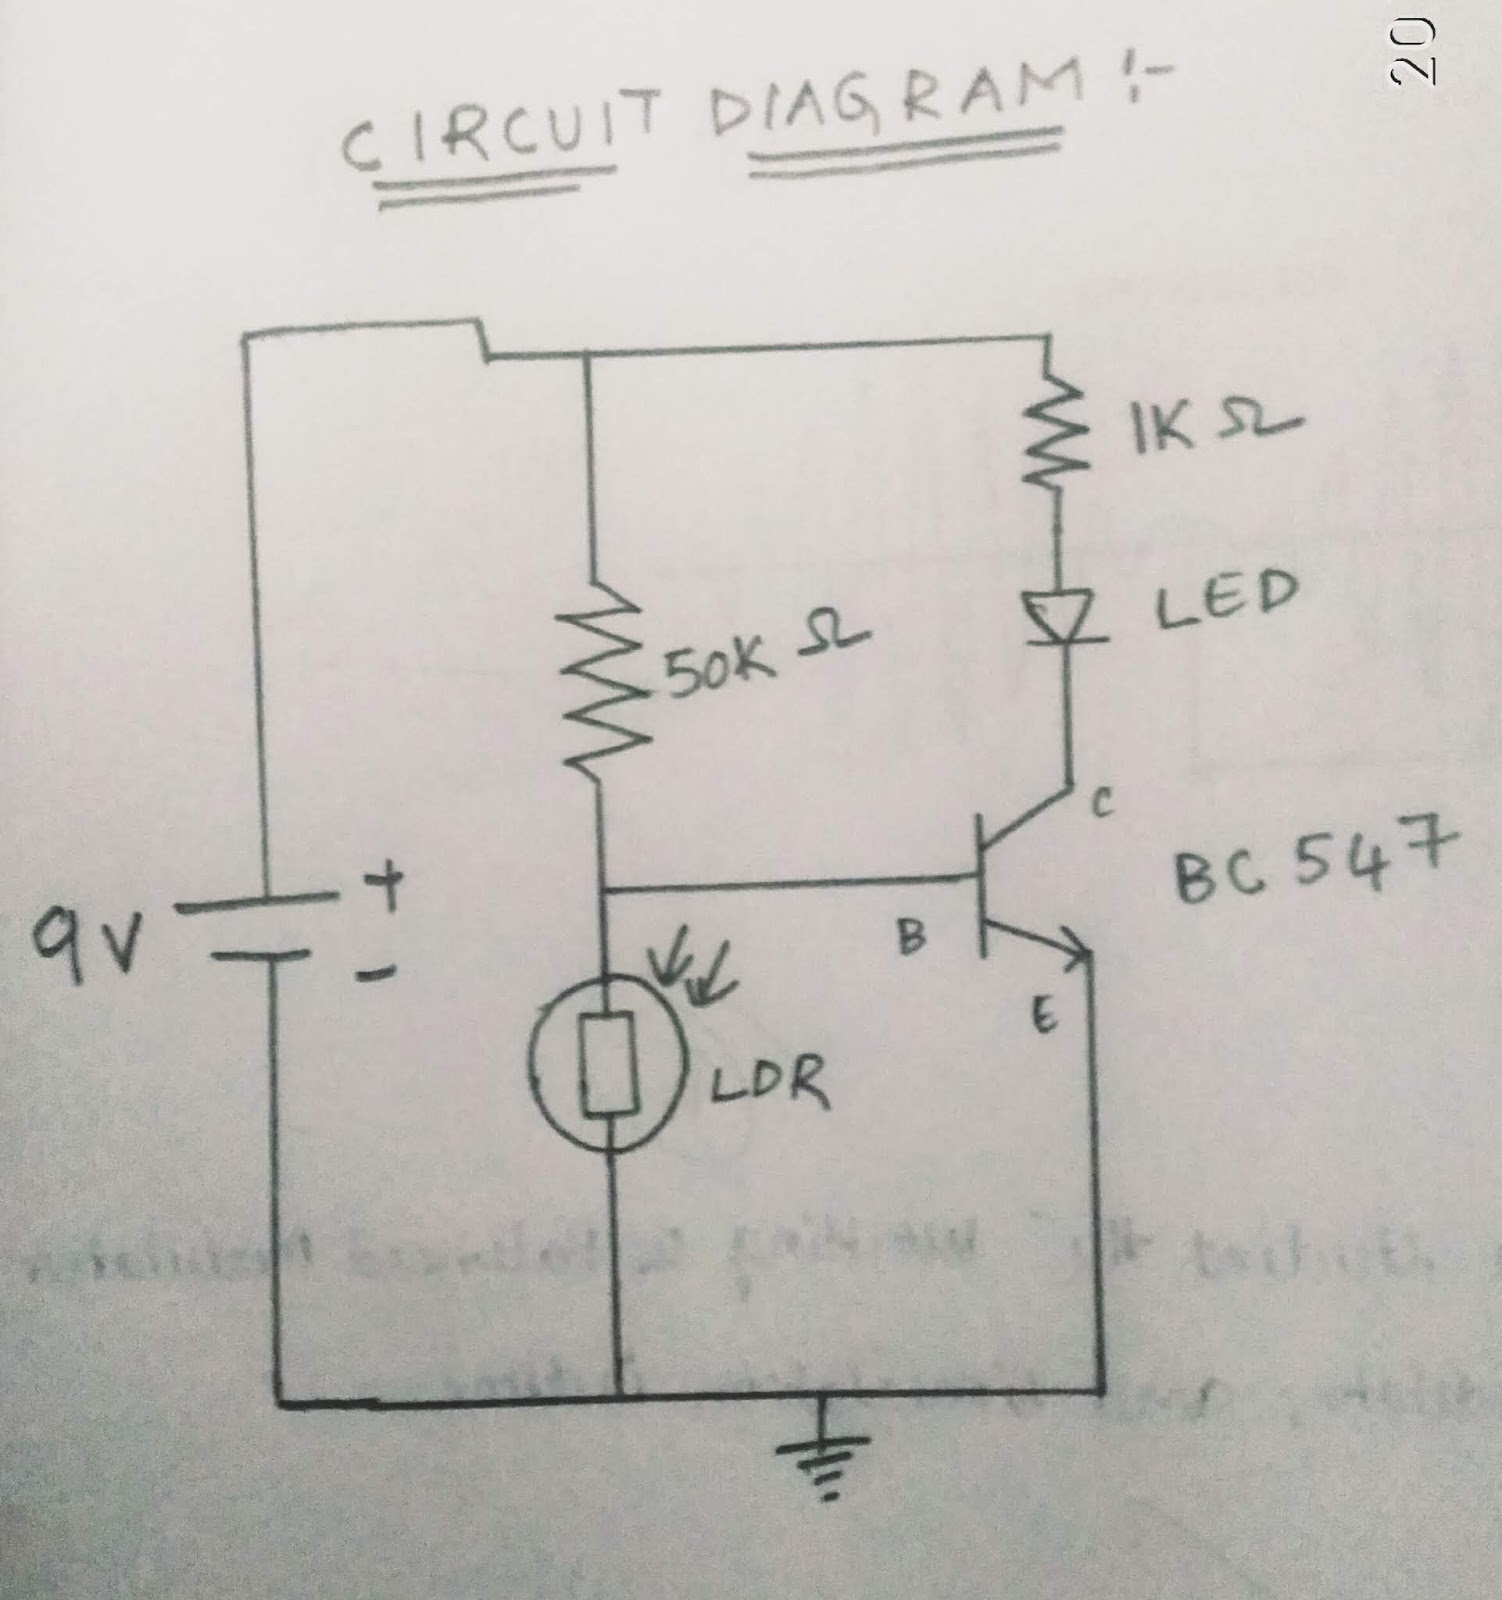 Nutank Circuit Diagram Ldr For Using In Automatic Street Light System